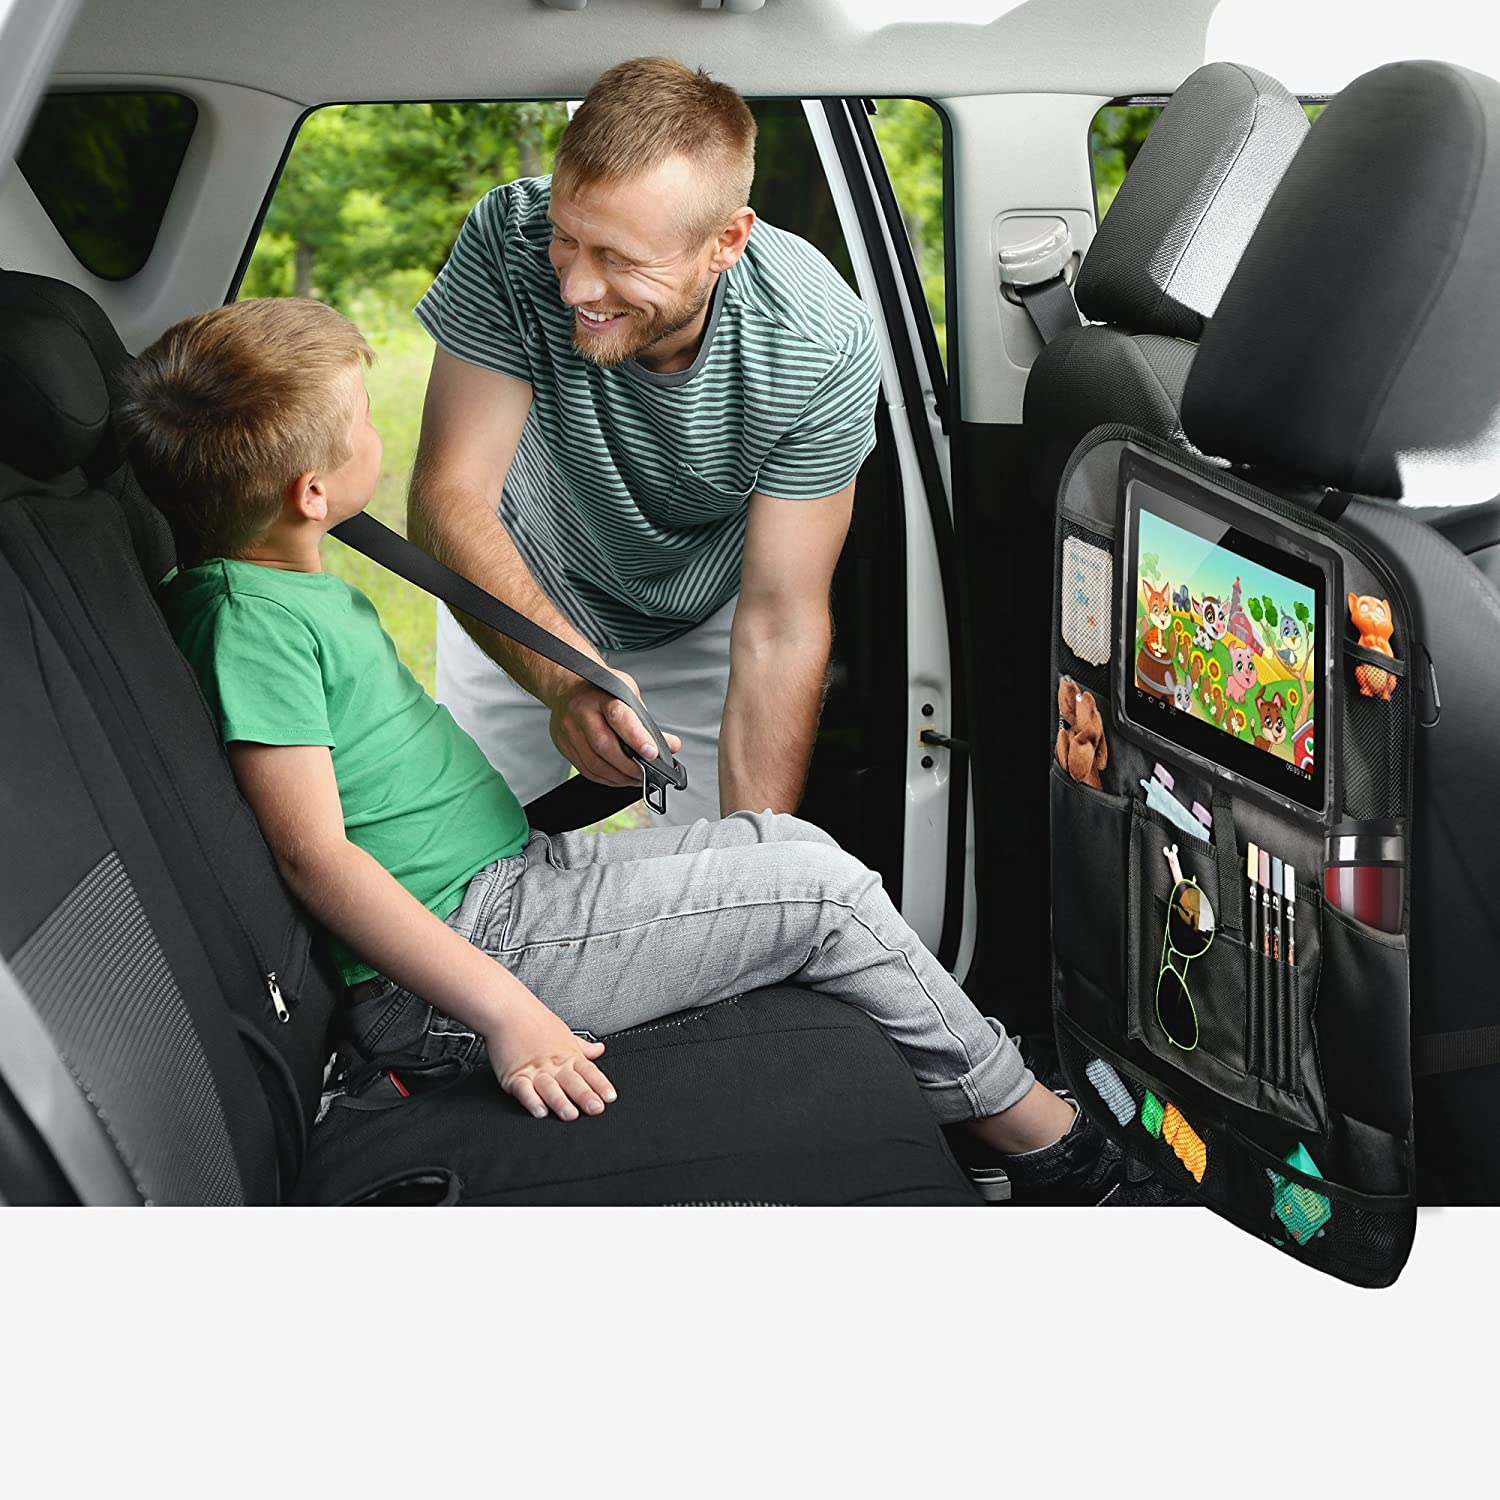 Tablet Holder Car Back Seat Organizer Essential Car Accessories for Road Trip by KiddyB Kick Mat Protector with Multipurpose Storage Pockets